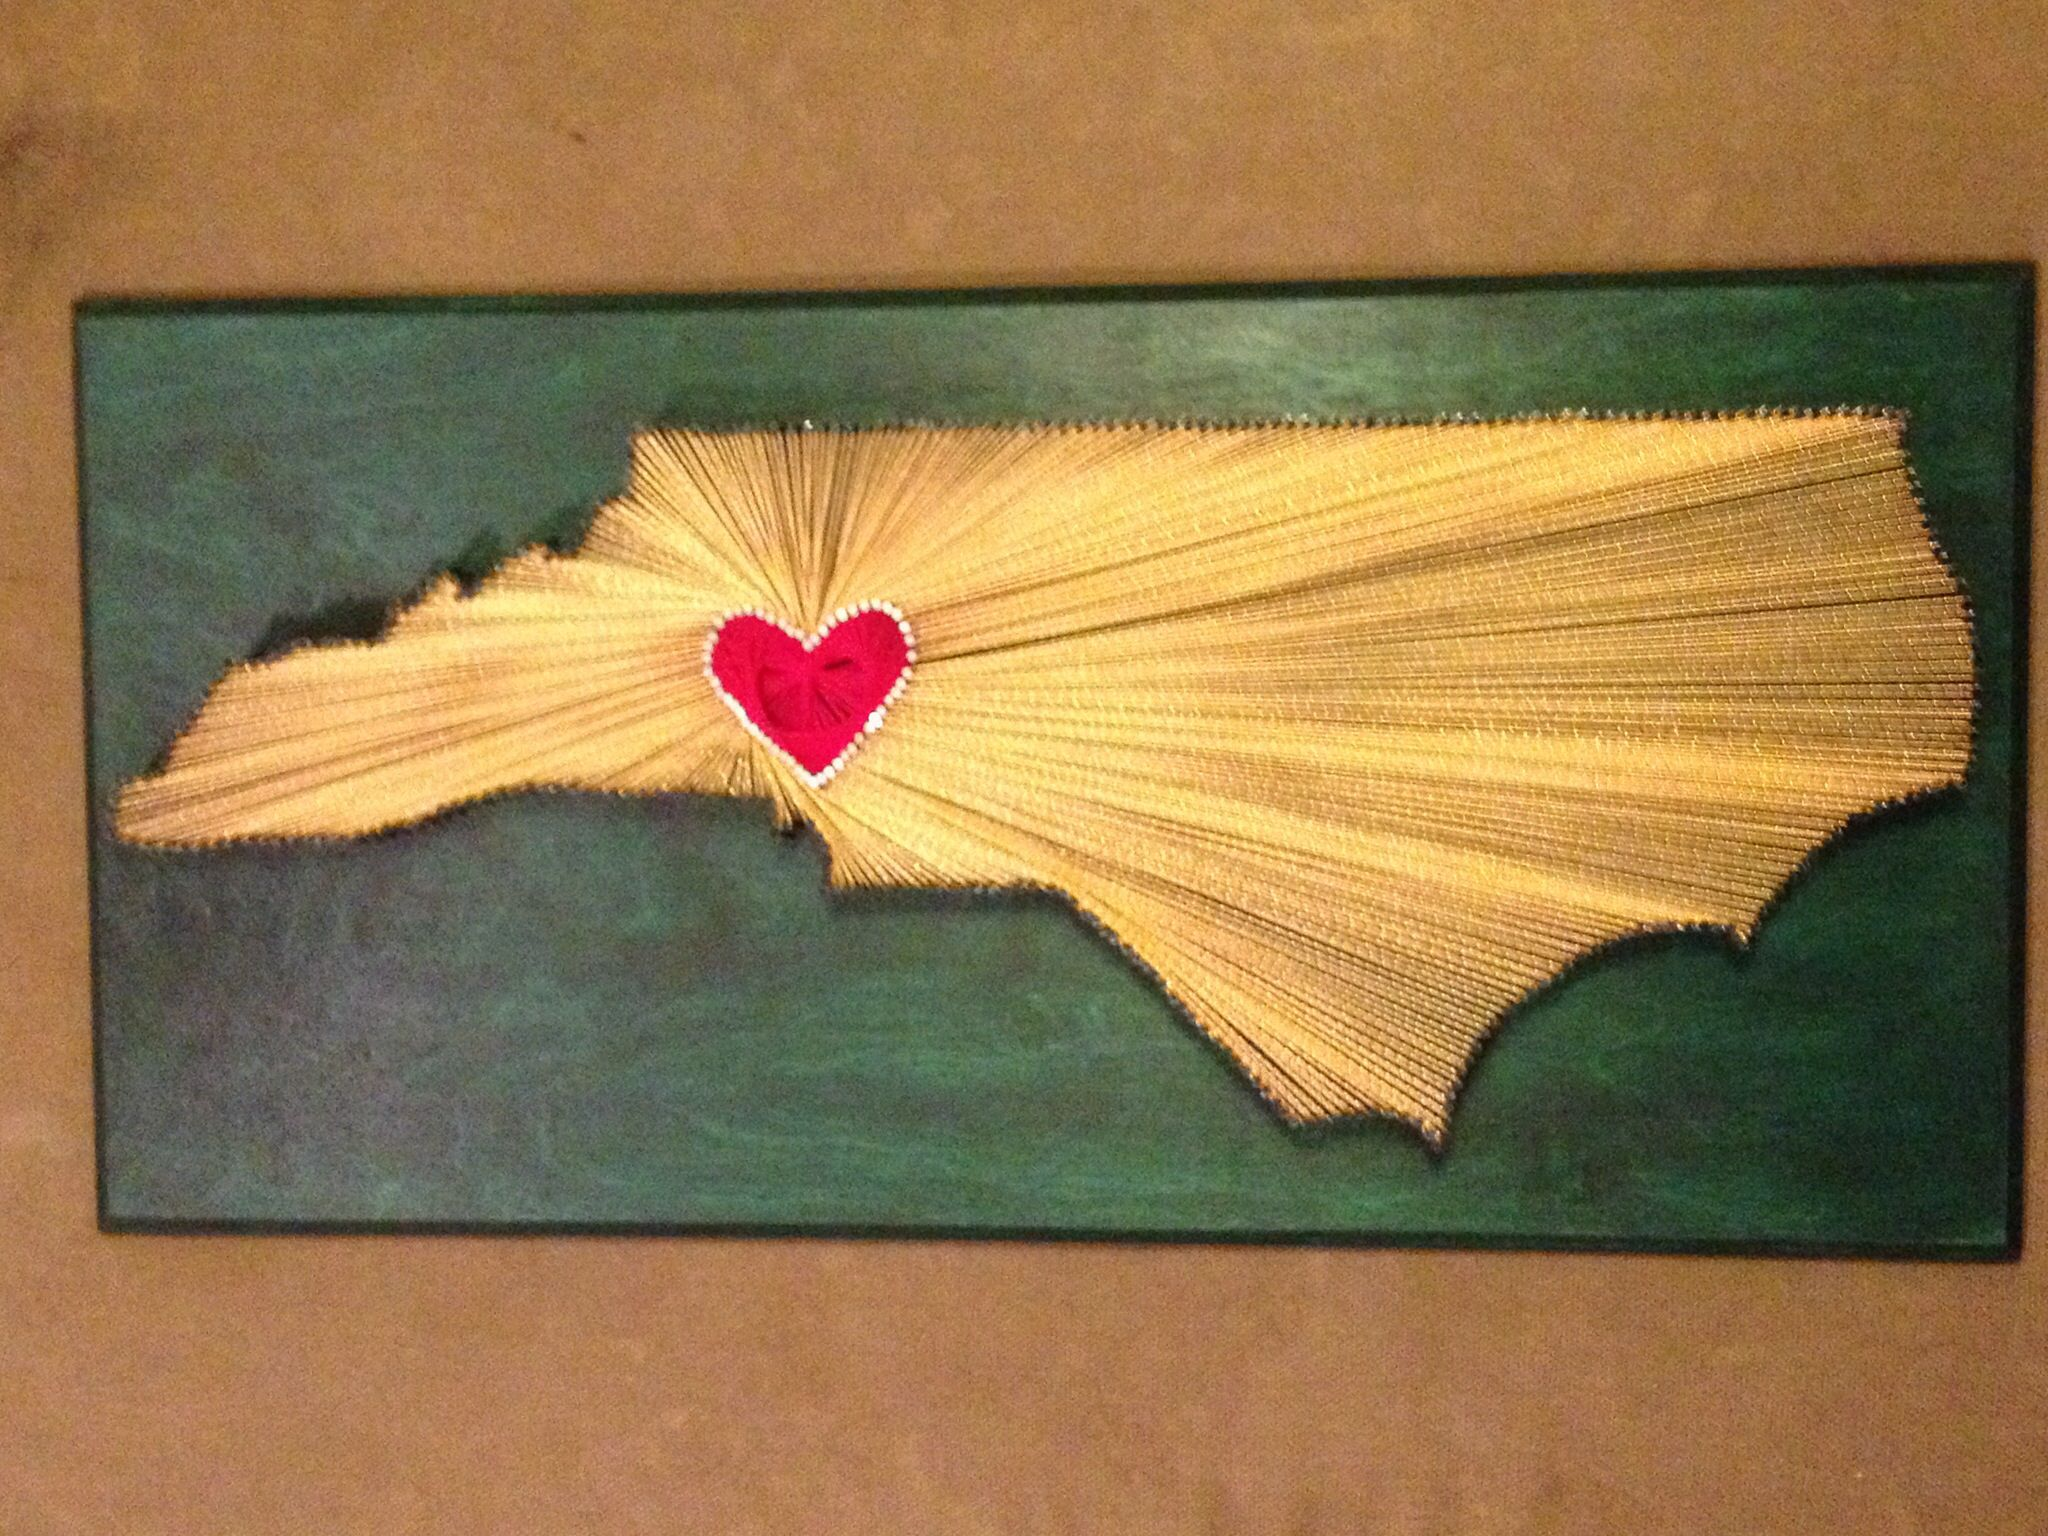 north carolina string art in unc charlotte colors nailedit only north carolina string art in unc charlotte colors nailedit only i would do it